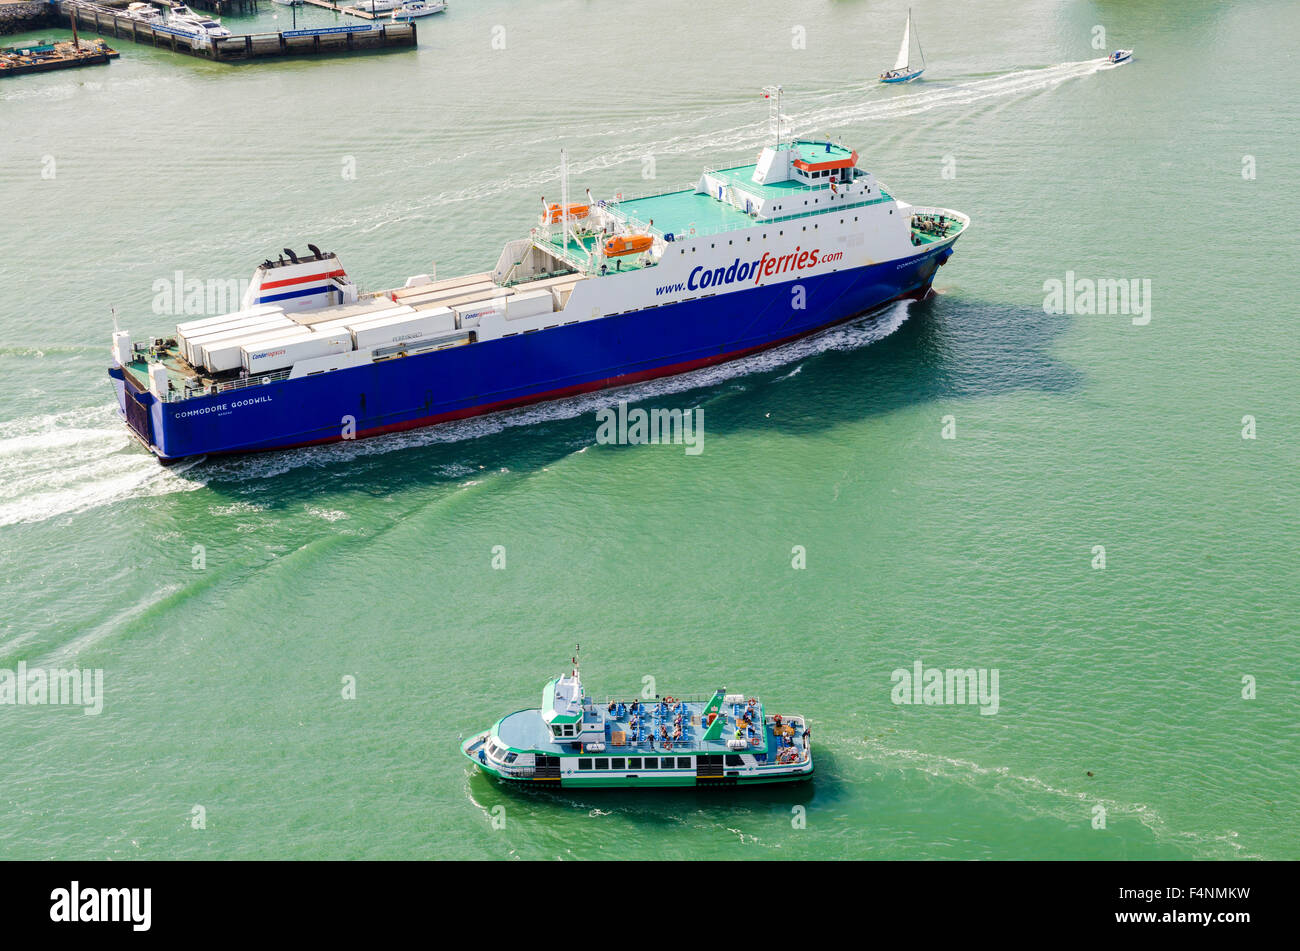 Condor Ferries freight ferry Commodore Goodwill and a passenger boat passing in Portsmouth Harbour, Hampshire, England. - Stock Image